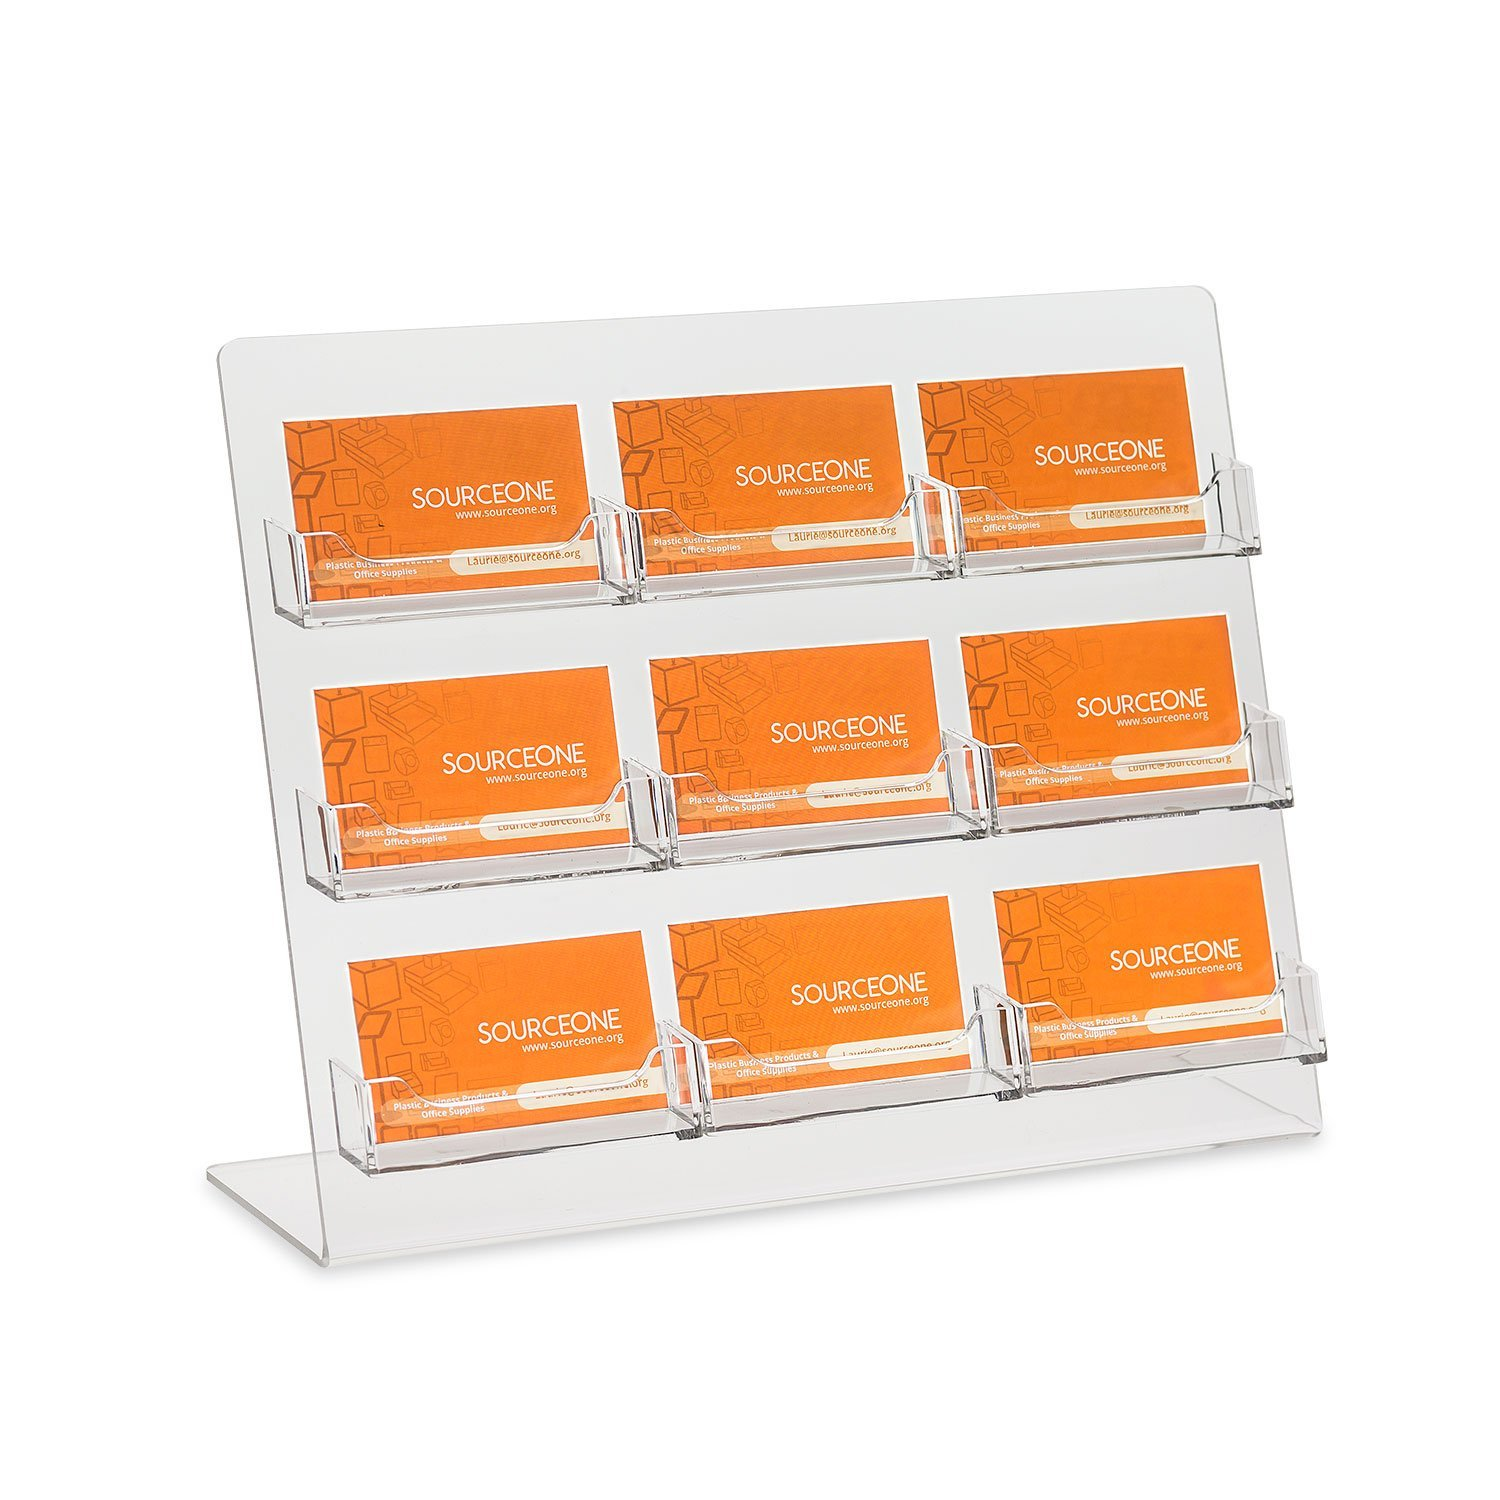 Source One Premium Counter Top Business Card Holder/Gift Card Display with 9 Pockets (9PCTOPBC)